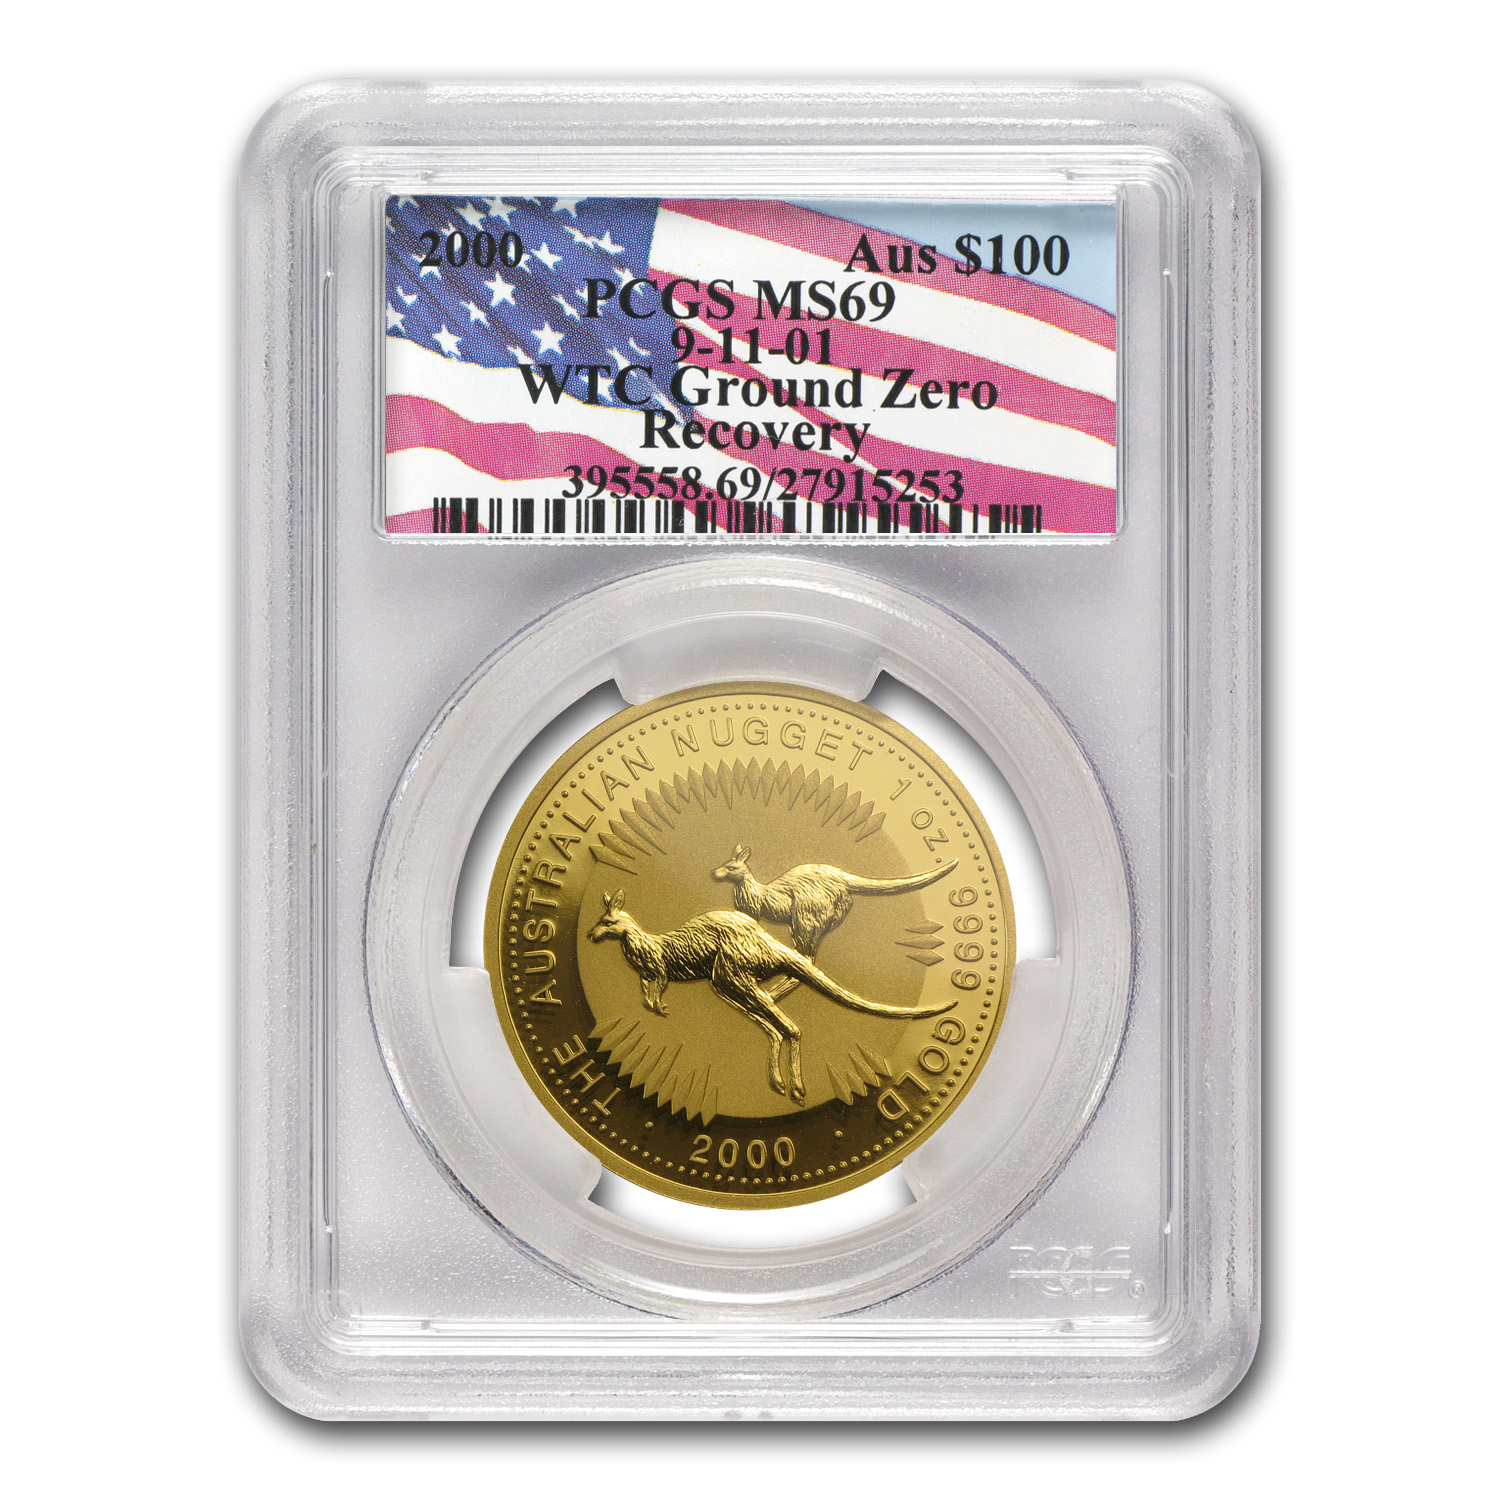 2000 1 oz Australian Gold Nugget MS-69 PCGS WTC Ground Zero